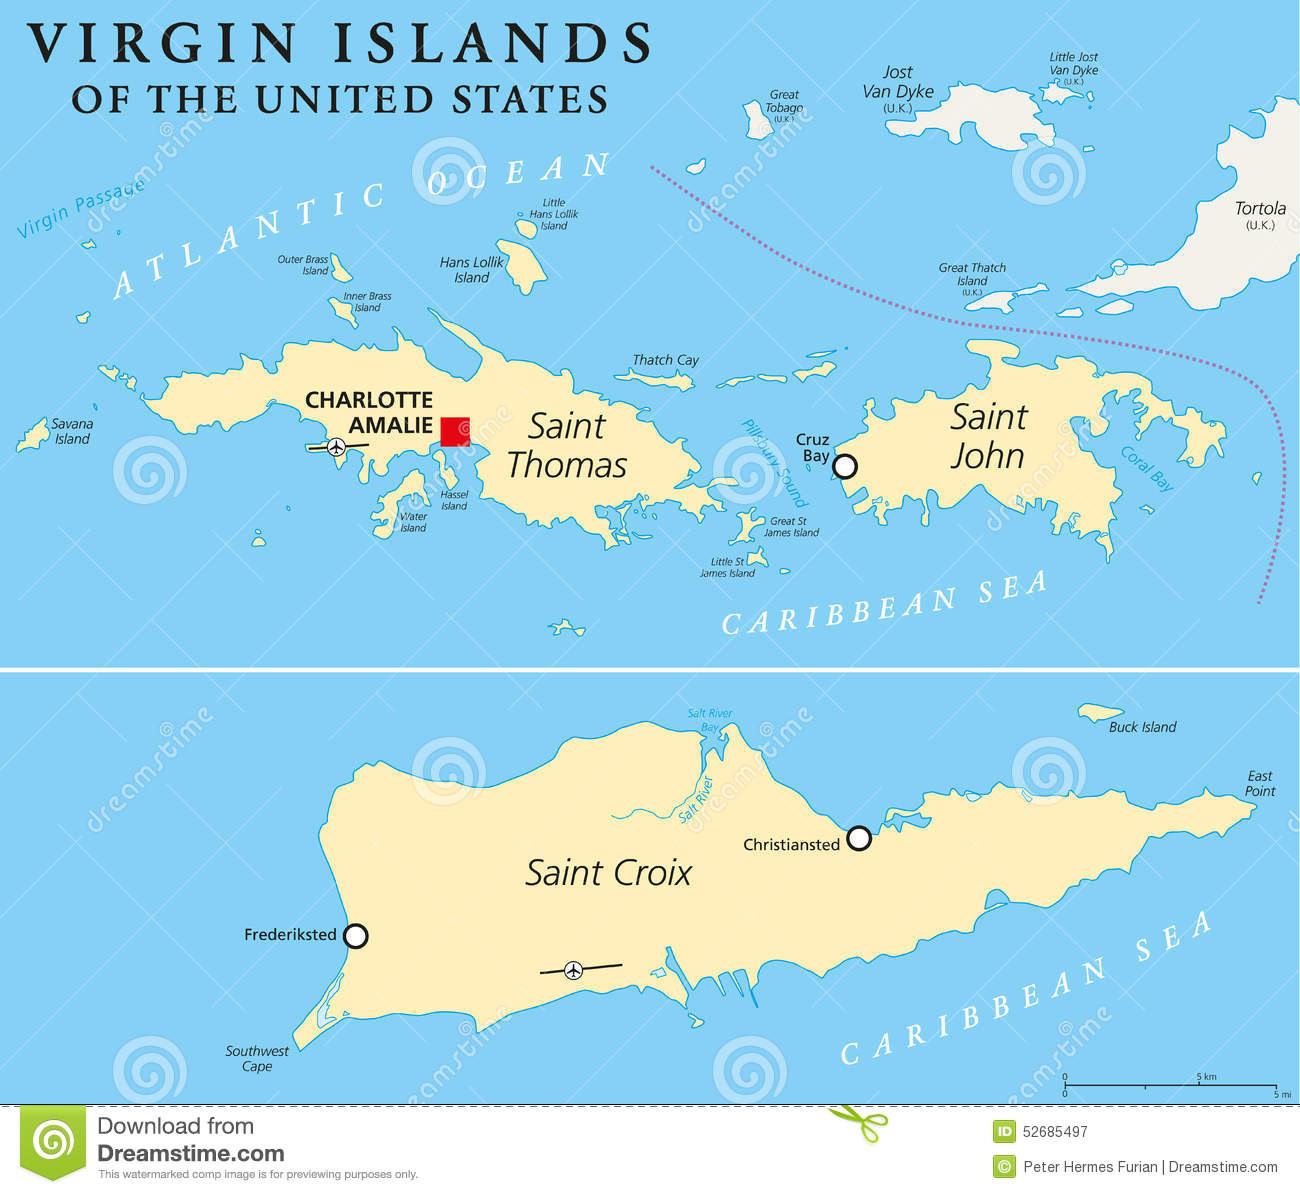 Governors of the united states virgin islands